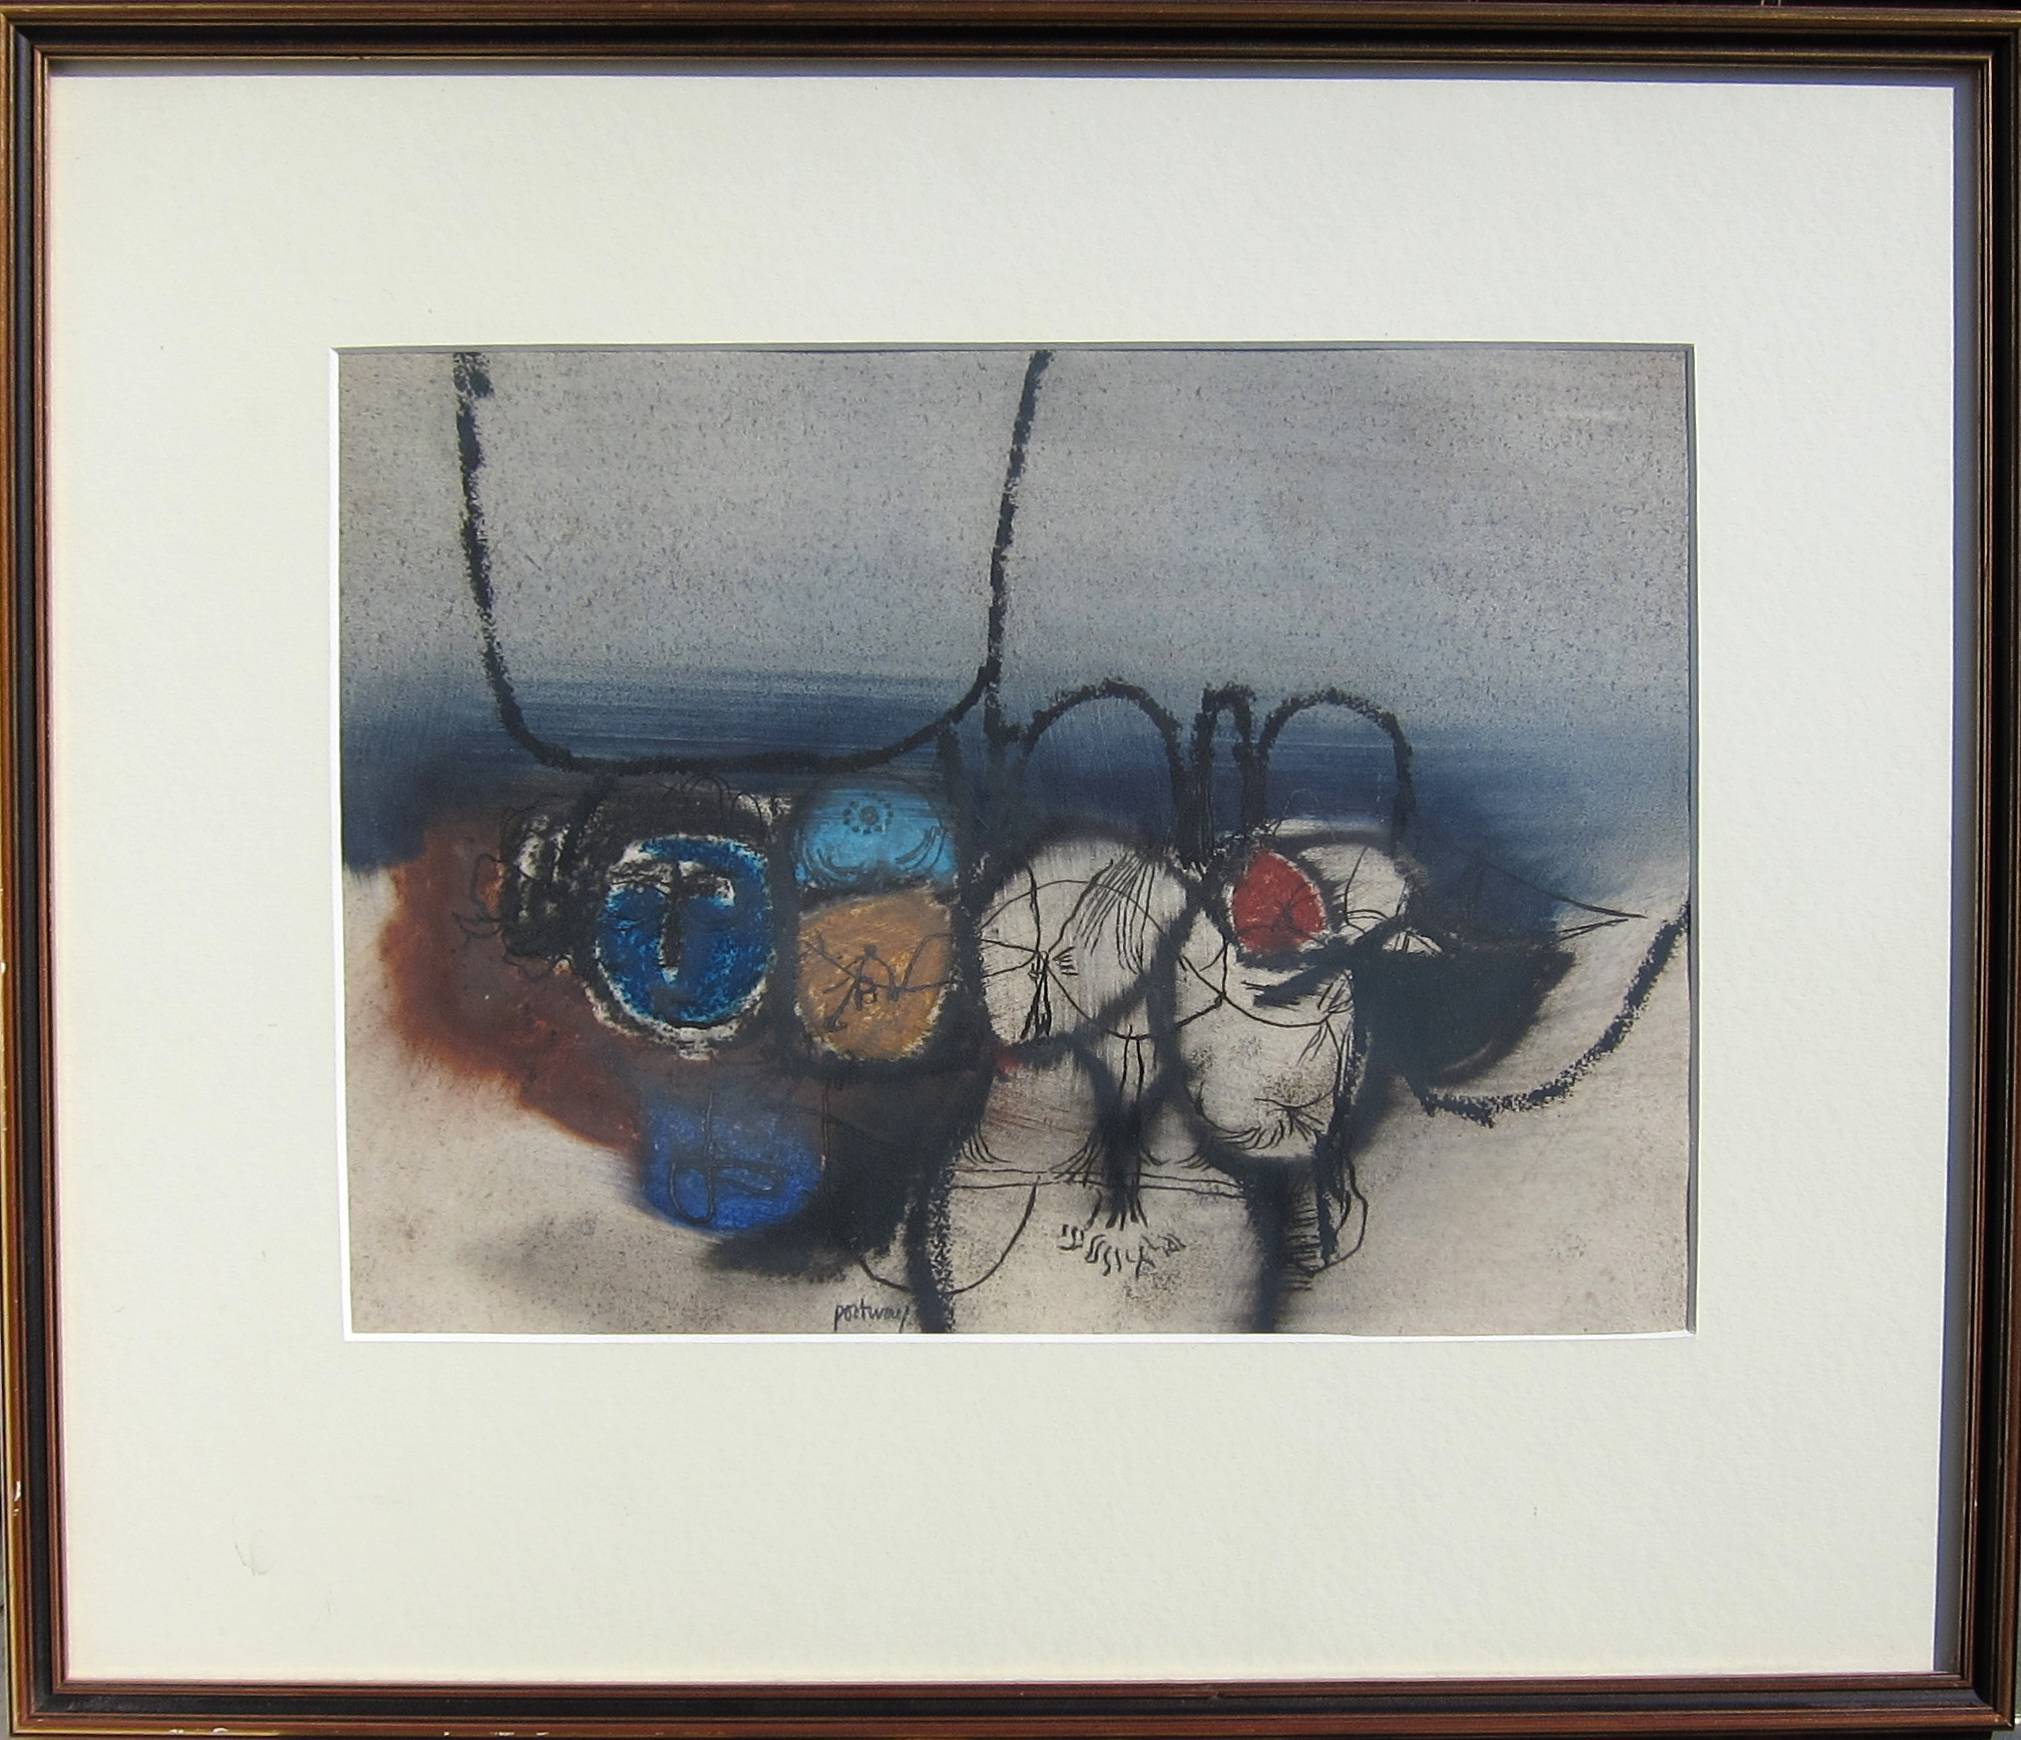 Lot 54 - DOUGLAS PORTWAY [1922-93]. Untitled, 1963. Oil on paper. Signed. 25 x 35 cm [overall including frame